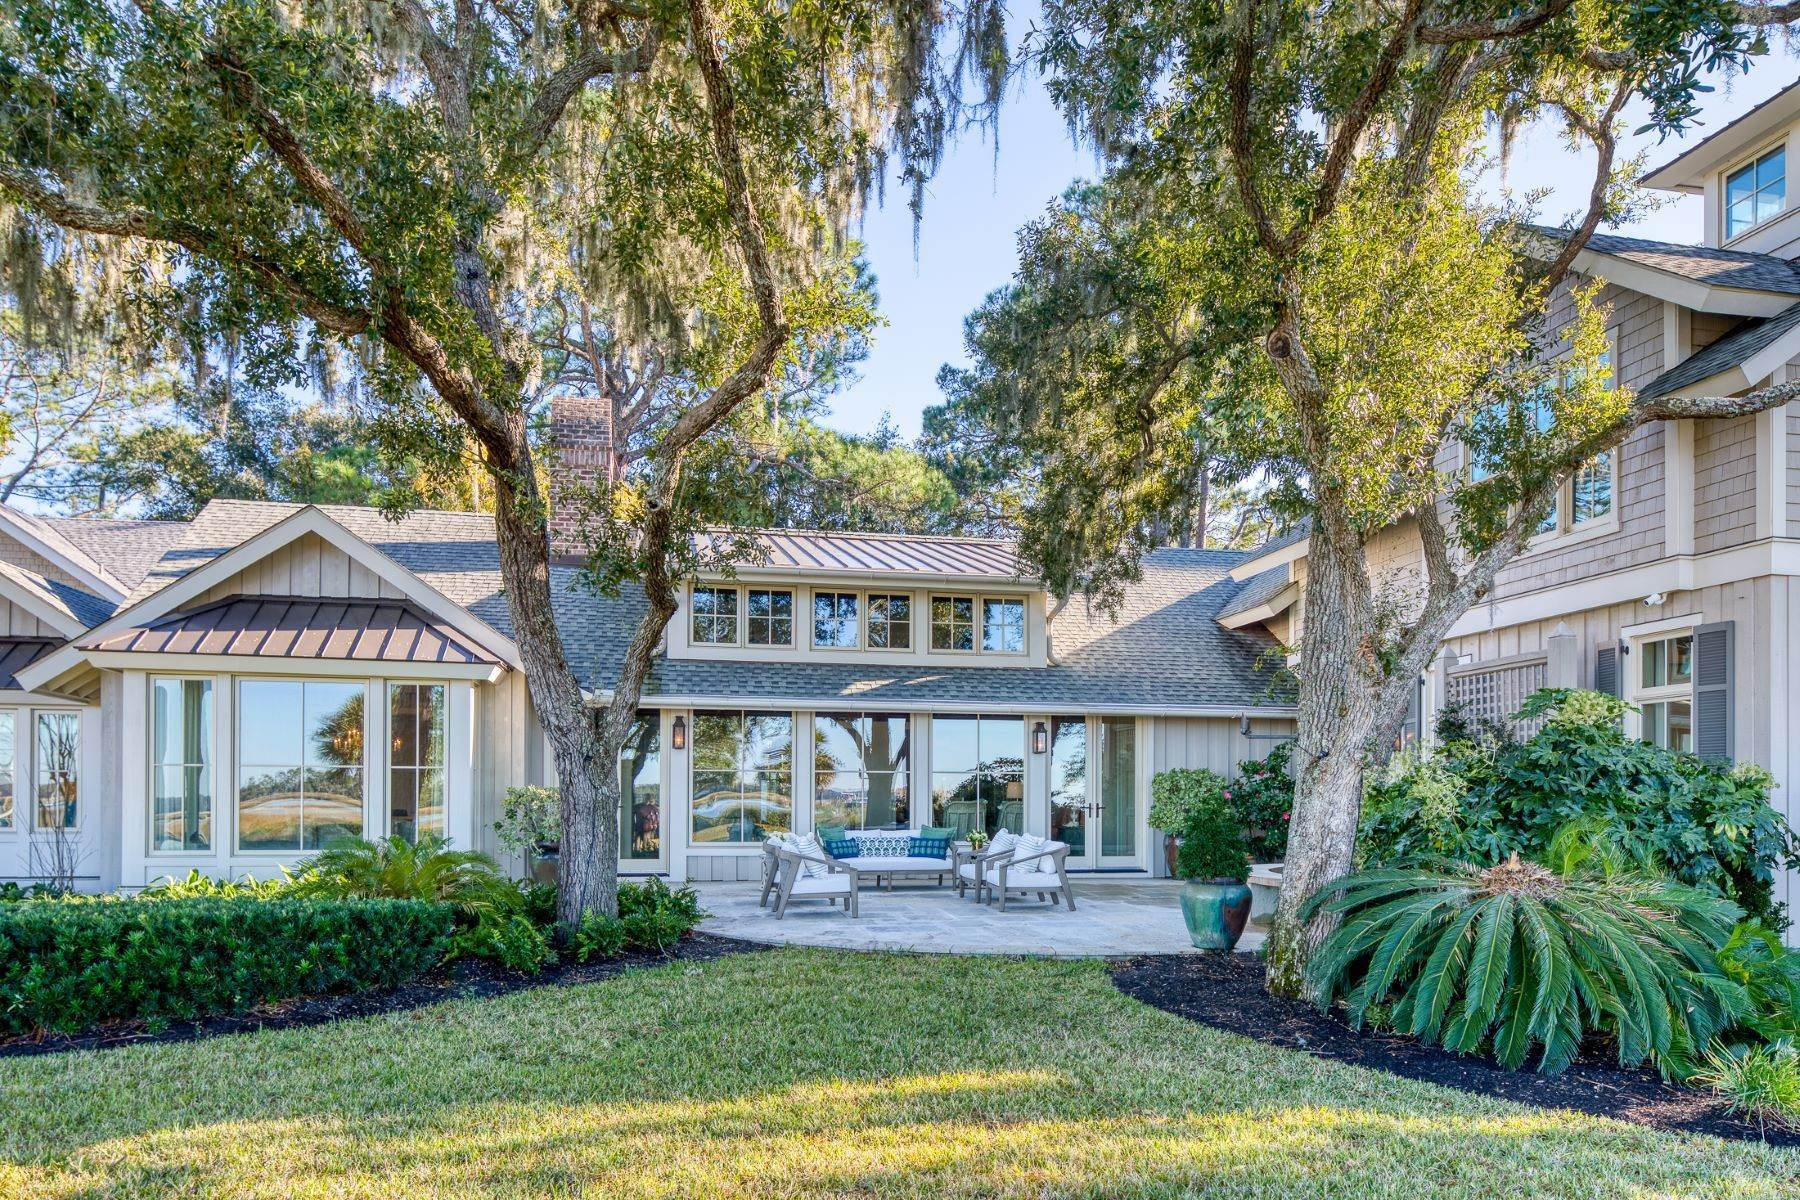 46. Single Family Homes for Sale at Premier Waterfront 71 North Calibogue Cay Hilton Head Island, South Carolina 29928 United States